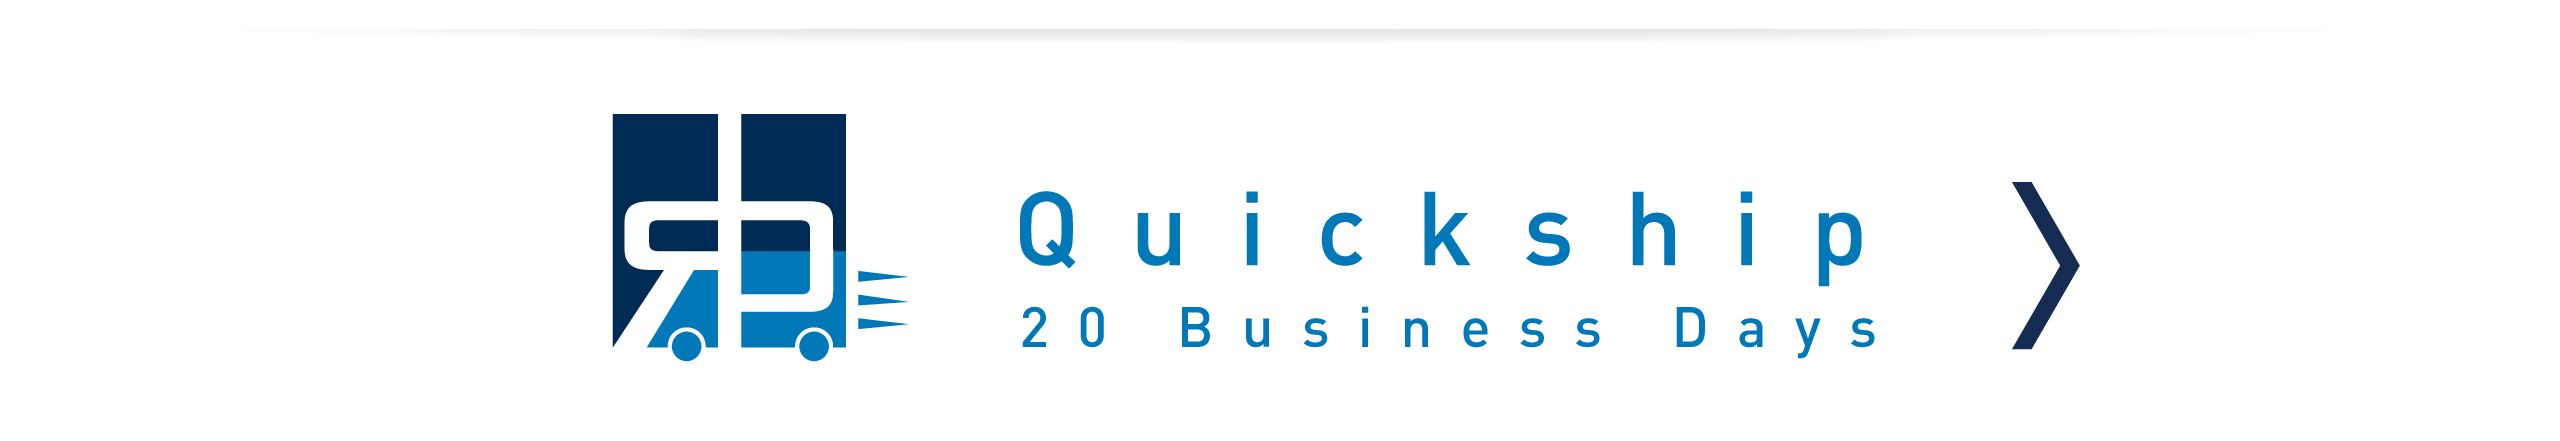 Quickship_eBlast_Footer_Updated 3